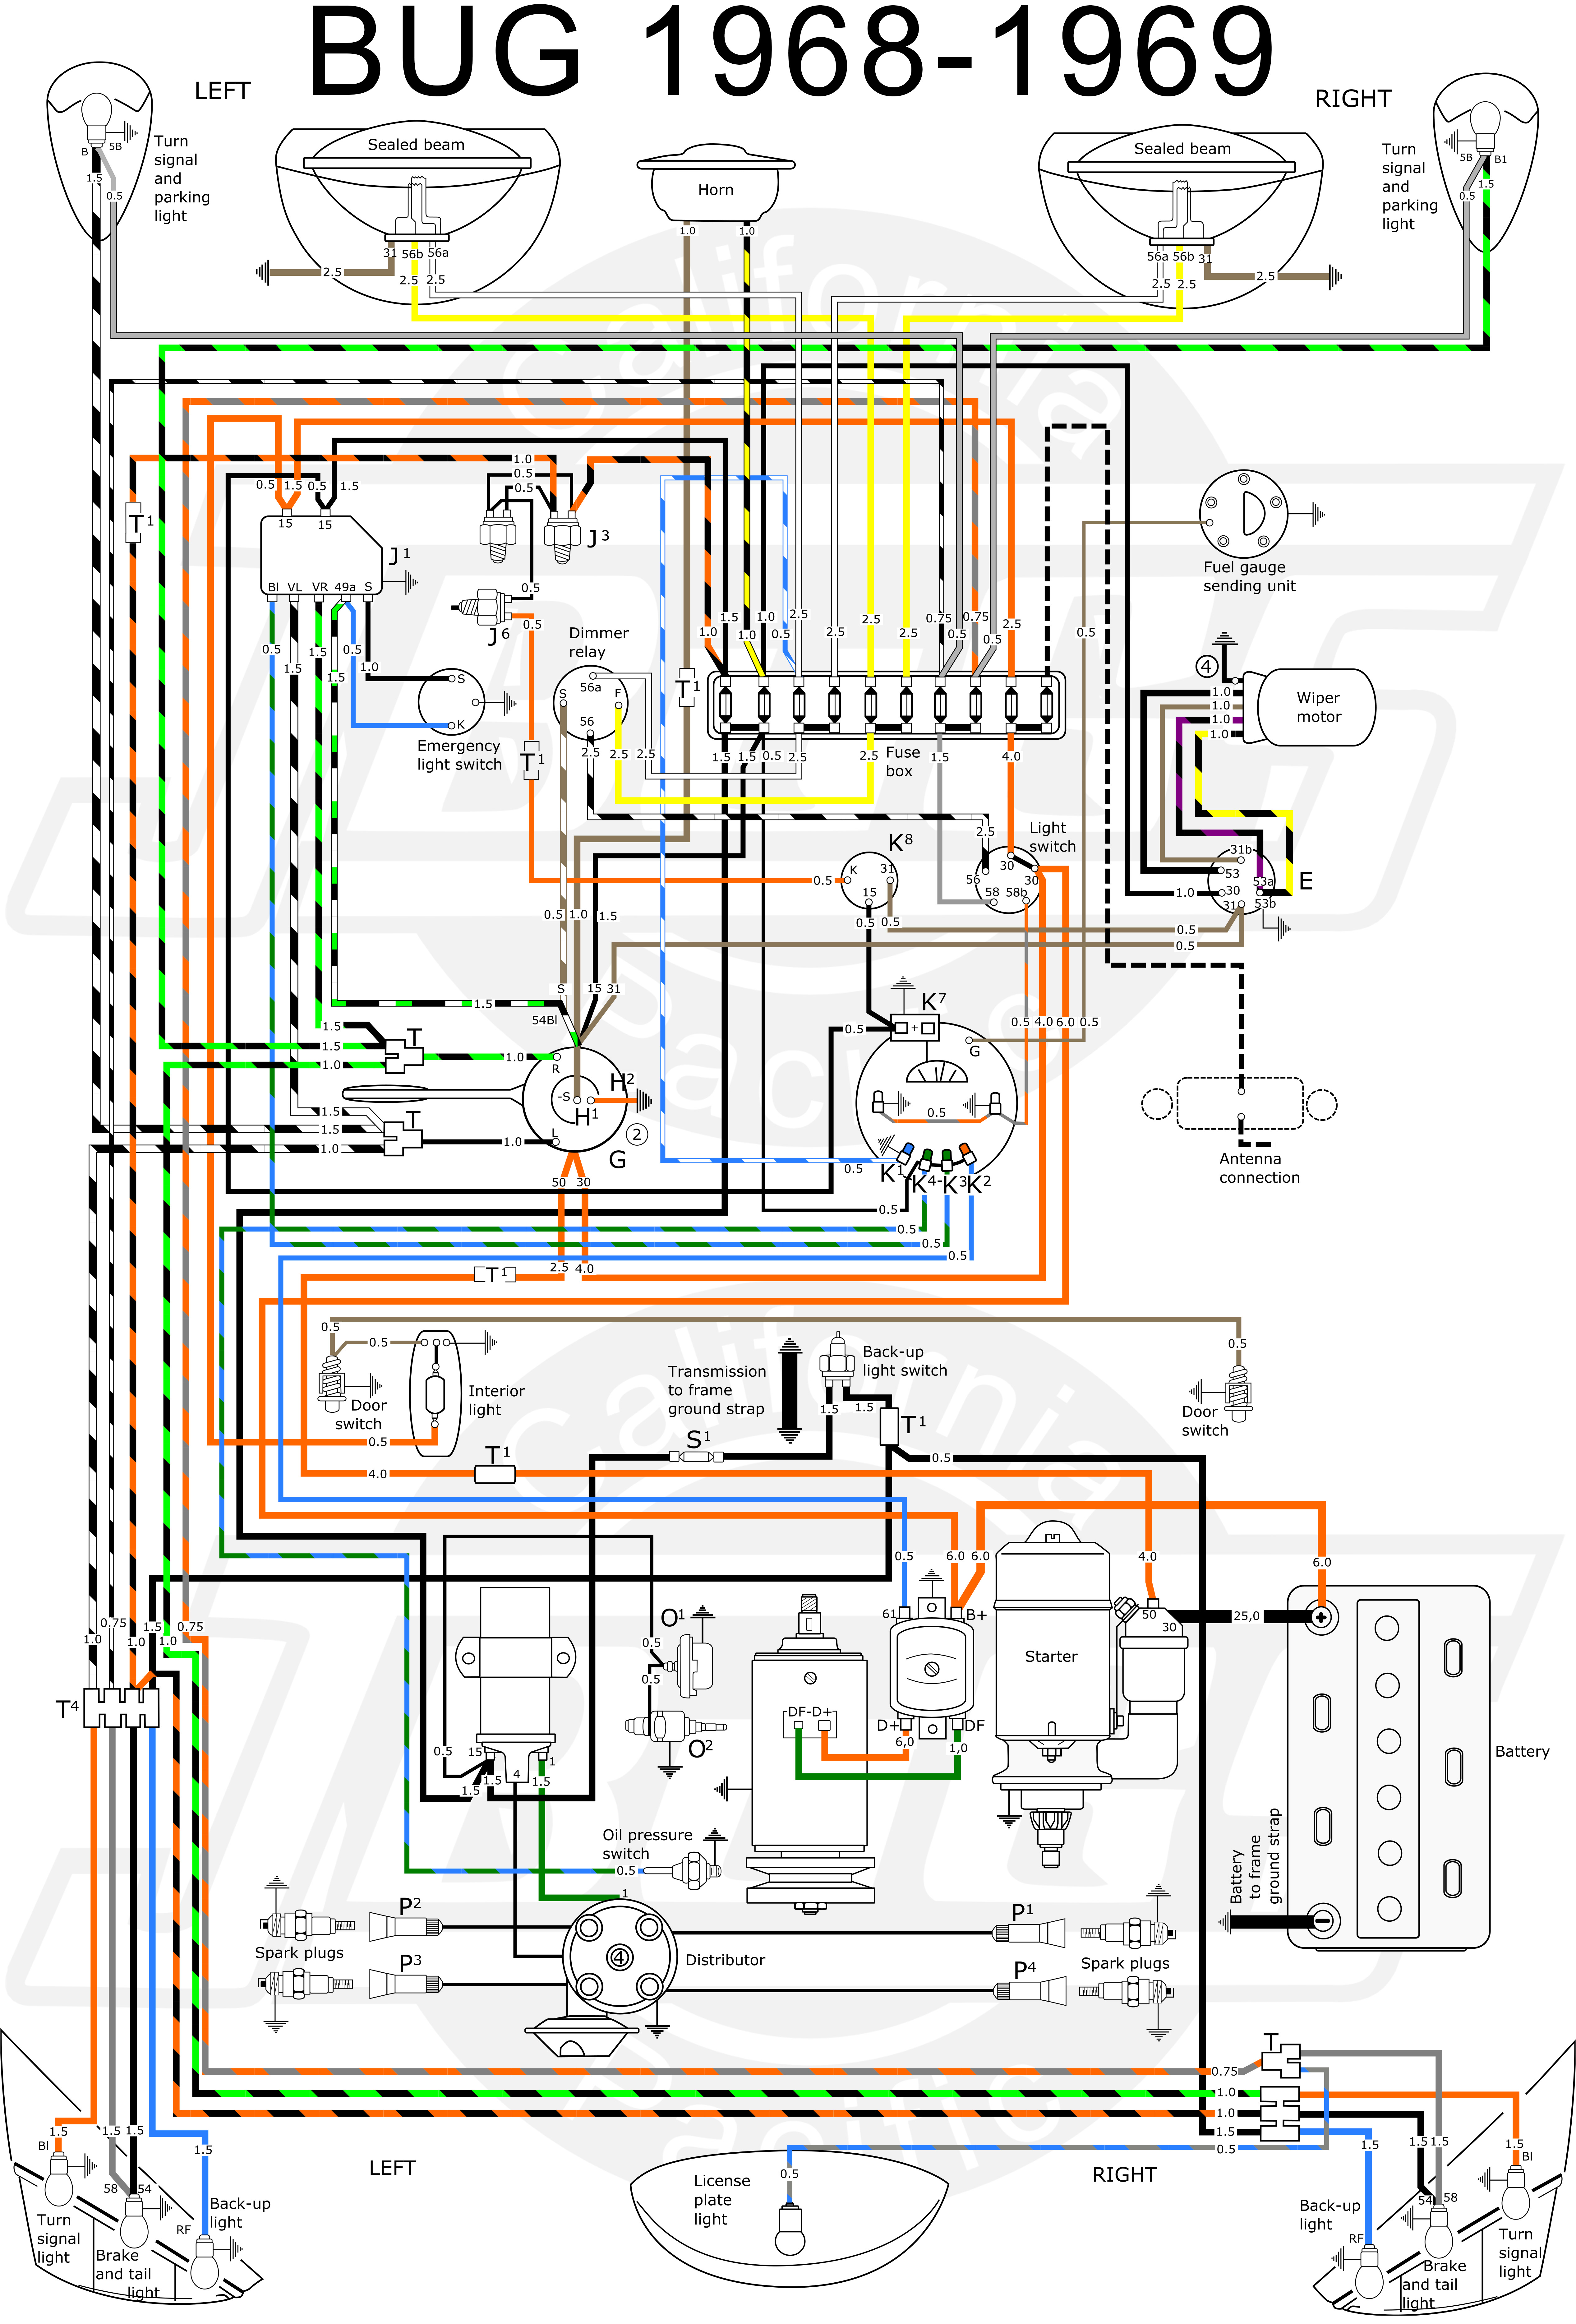 04 Impala Wiper Wiring Diagram Auto Electrical 1986 Firebird Schematic 1973 Vw Beetle Tail Light Taillight 2008 Chevy Source